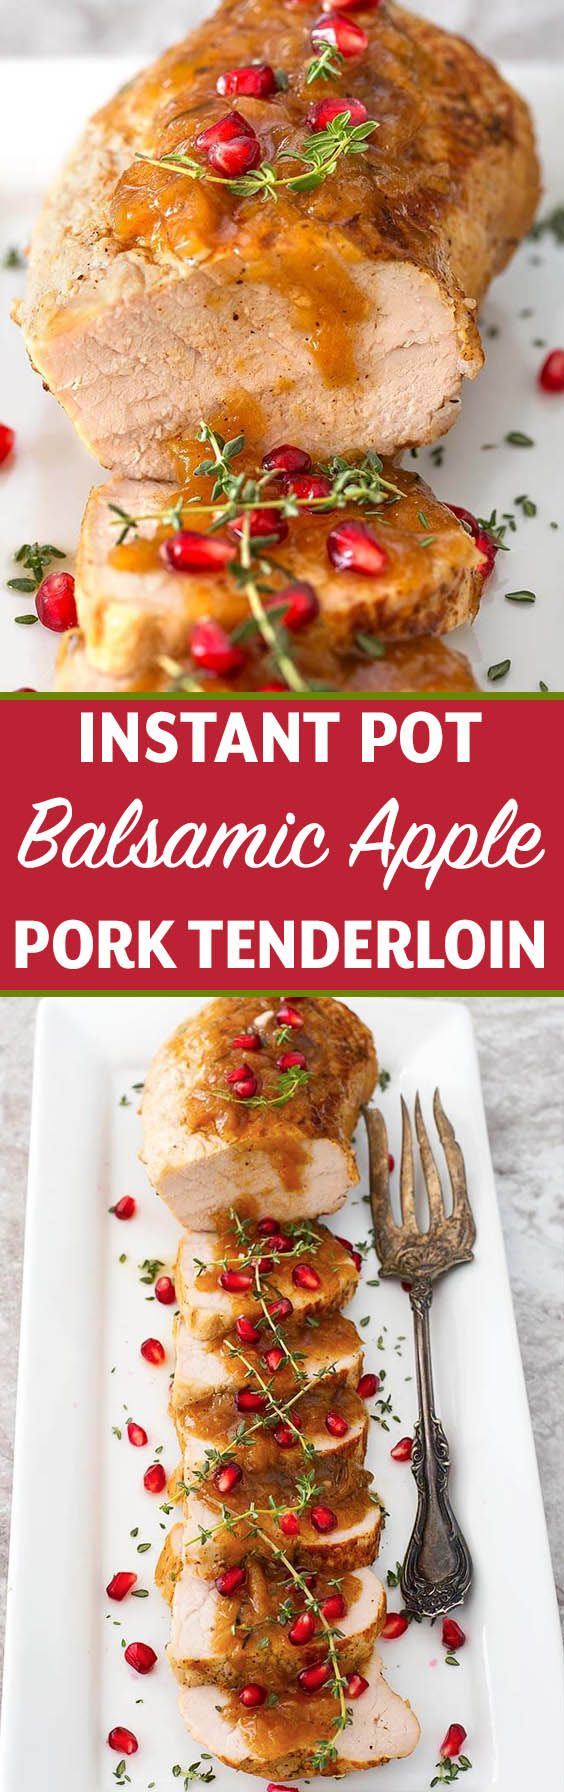 Instant Pot Balsamic Apple Pork Tenderloin is a delicious quick meal cooked in your electric pressure cooker. It tastes like a gourmet dish! simplyhappyfoodie.com #instantpotrecipes #instantpotporktenderloin #instantpotpork